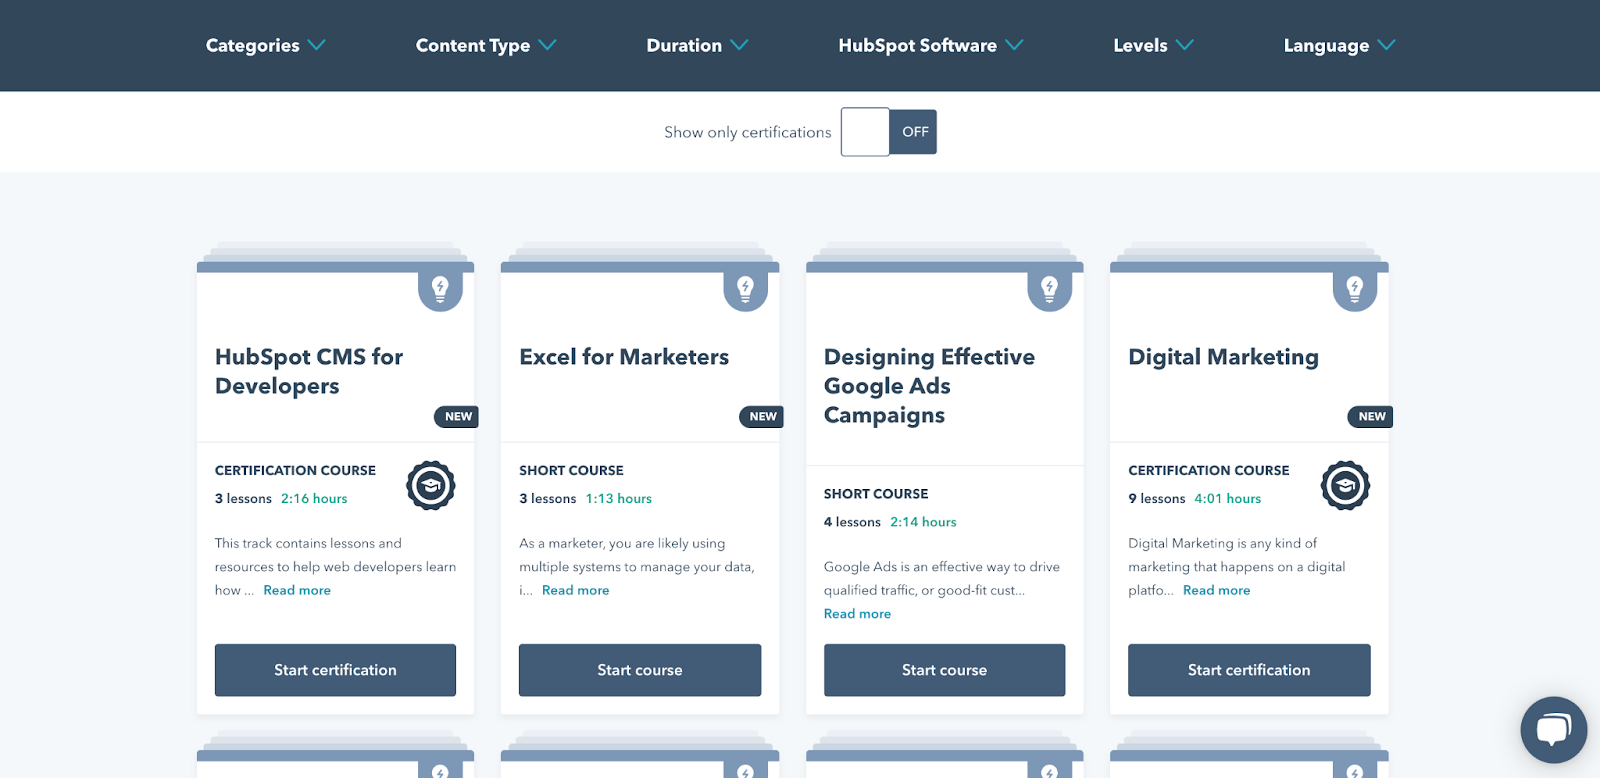 HubSpot Academy content for career and learning the tool